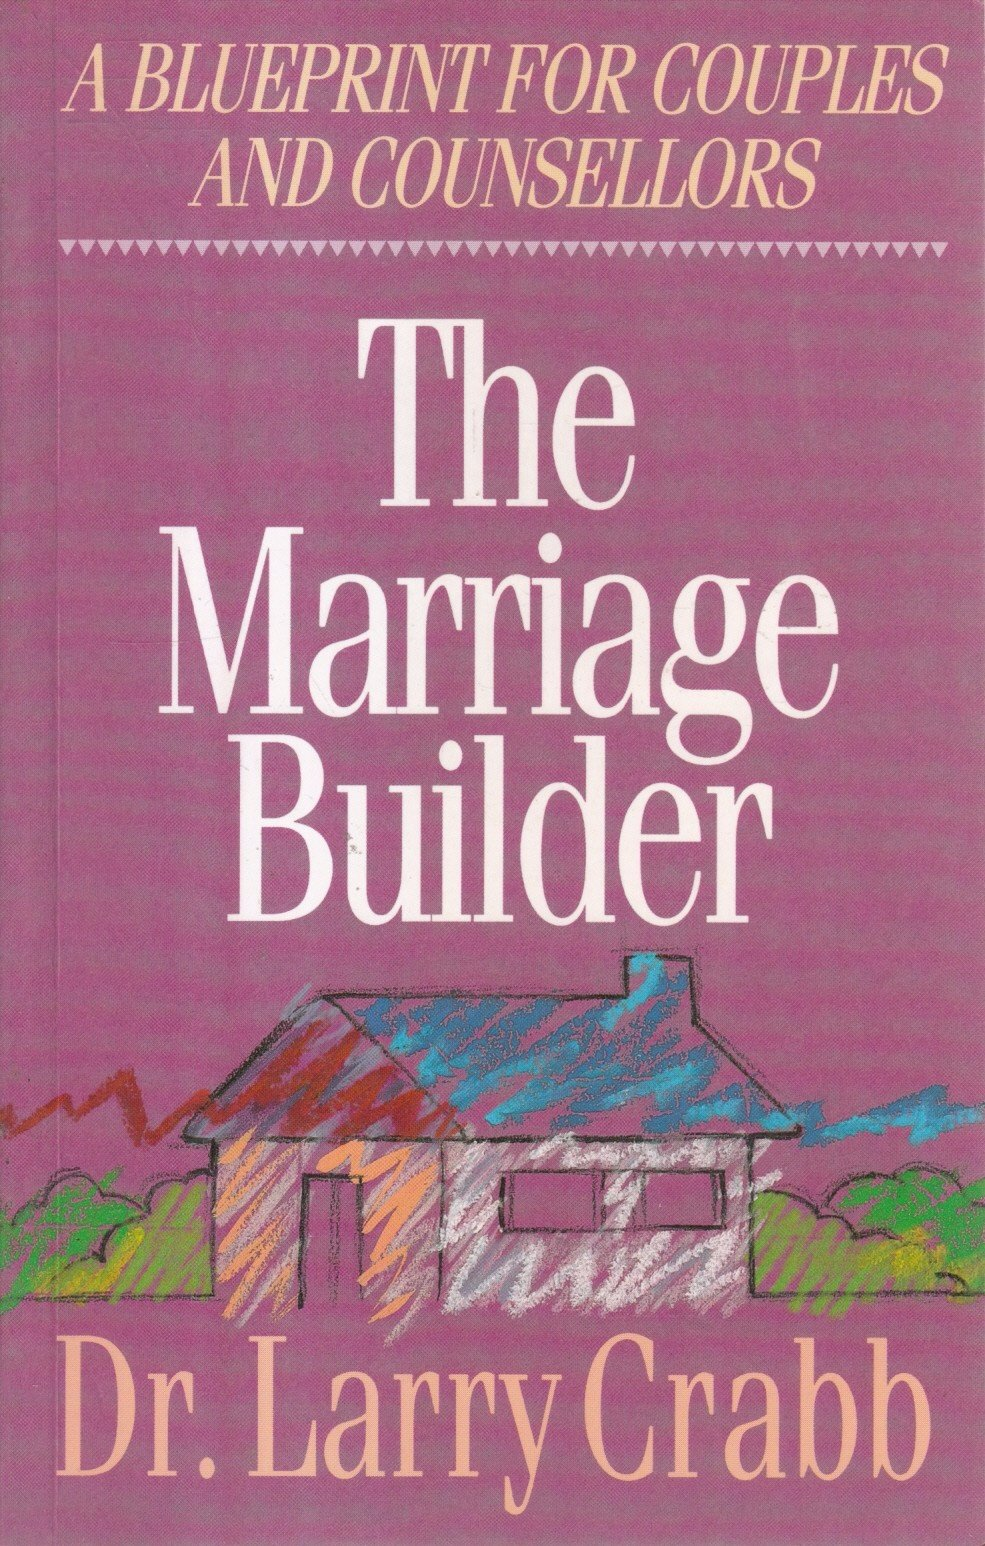 Marriage builder a blueprint for couples and counselors lawrence j marriage builder a blueprint for couples and counselors lawrence j crabb dr larry crabb 9780310225812 amazon books malvernweather Gallery